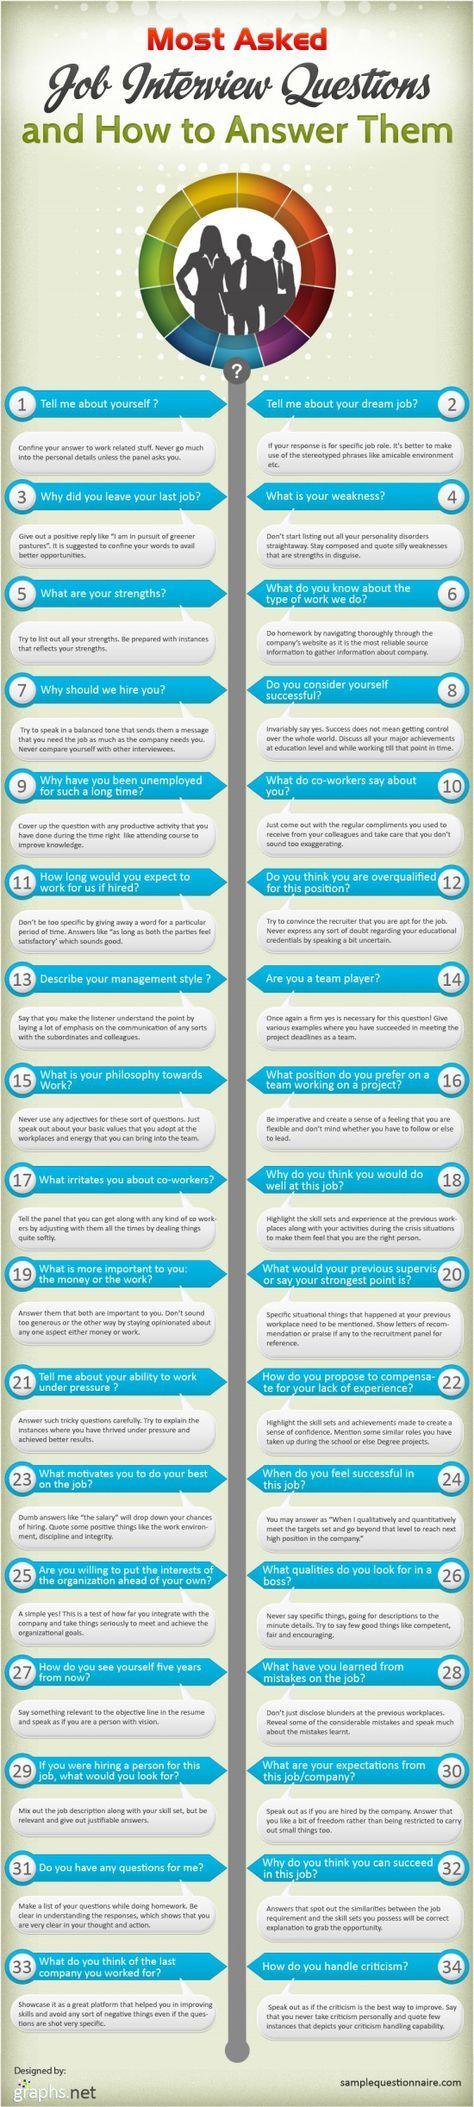 Most asked interview questions. These would be good tips if I could read them without cringing at all the bad grammar. #J360